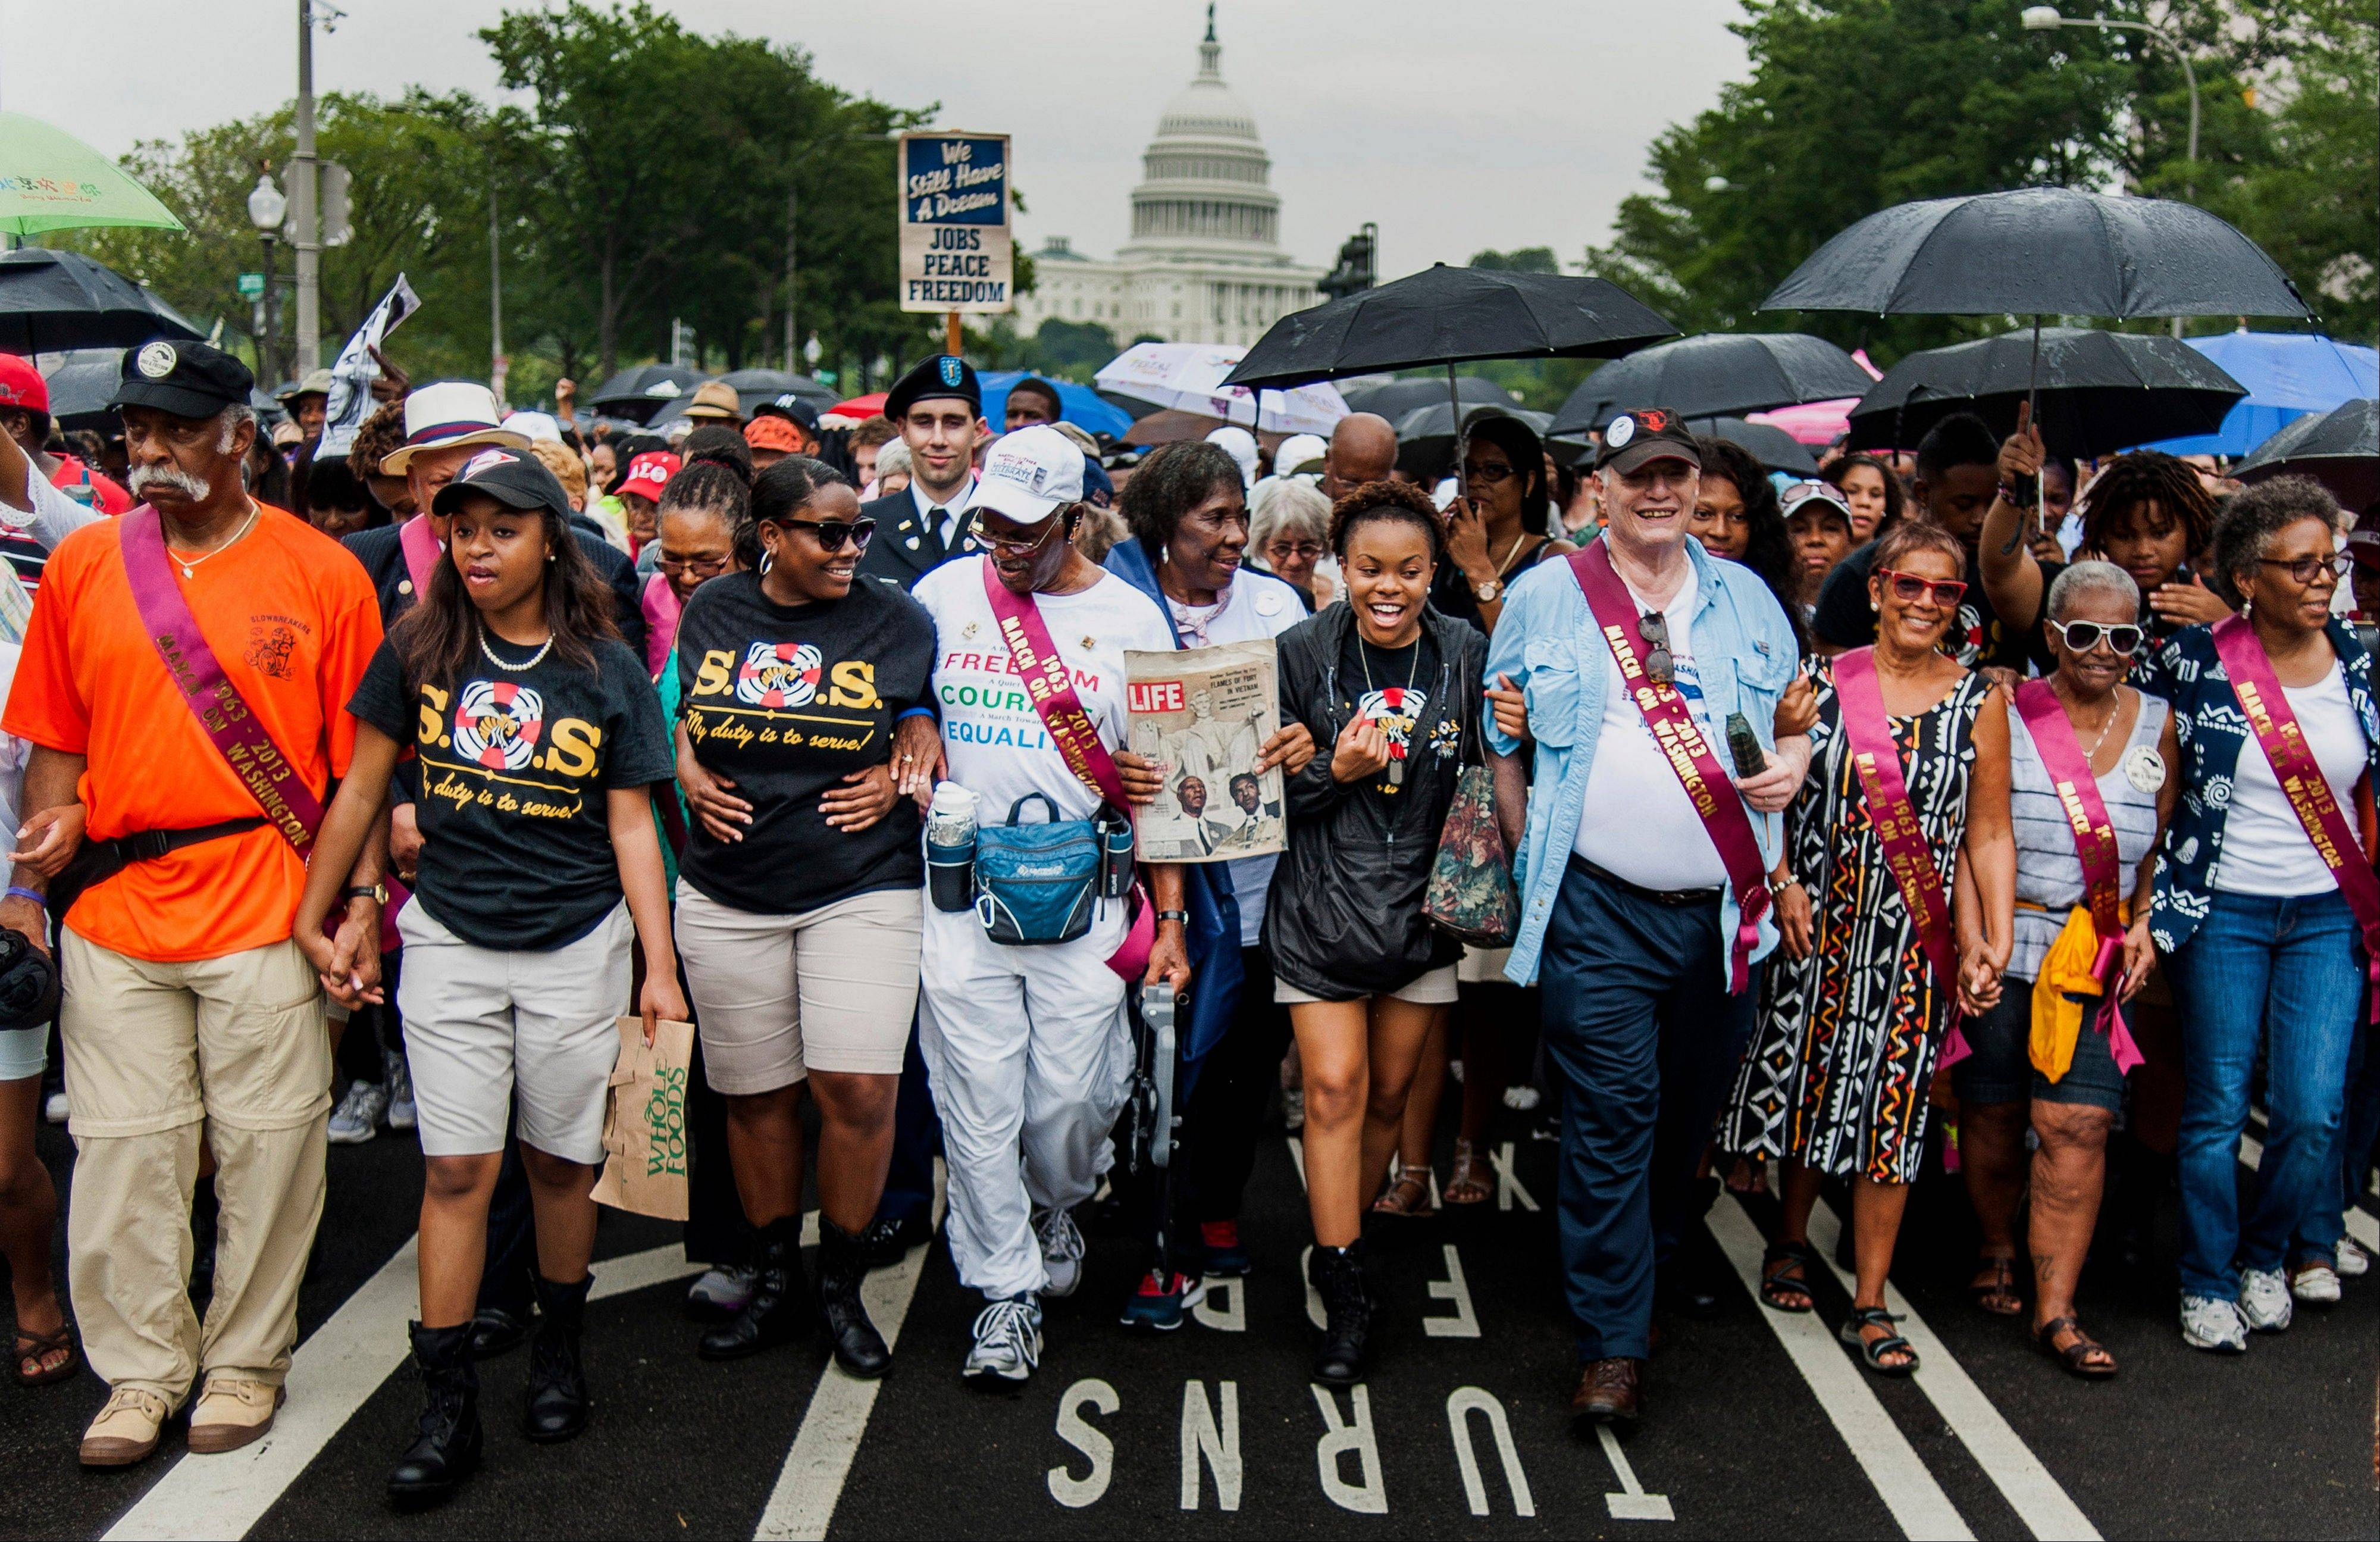 Participants walk in the March for Jobs and Justice in Washington, D.C., U.S., on Wednesday, Aug. 28, 2013. The march was part of the Let Freedom Ring ceremony.